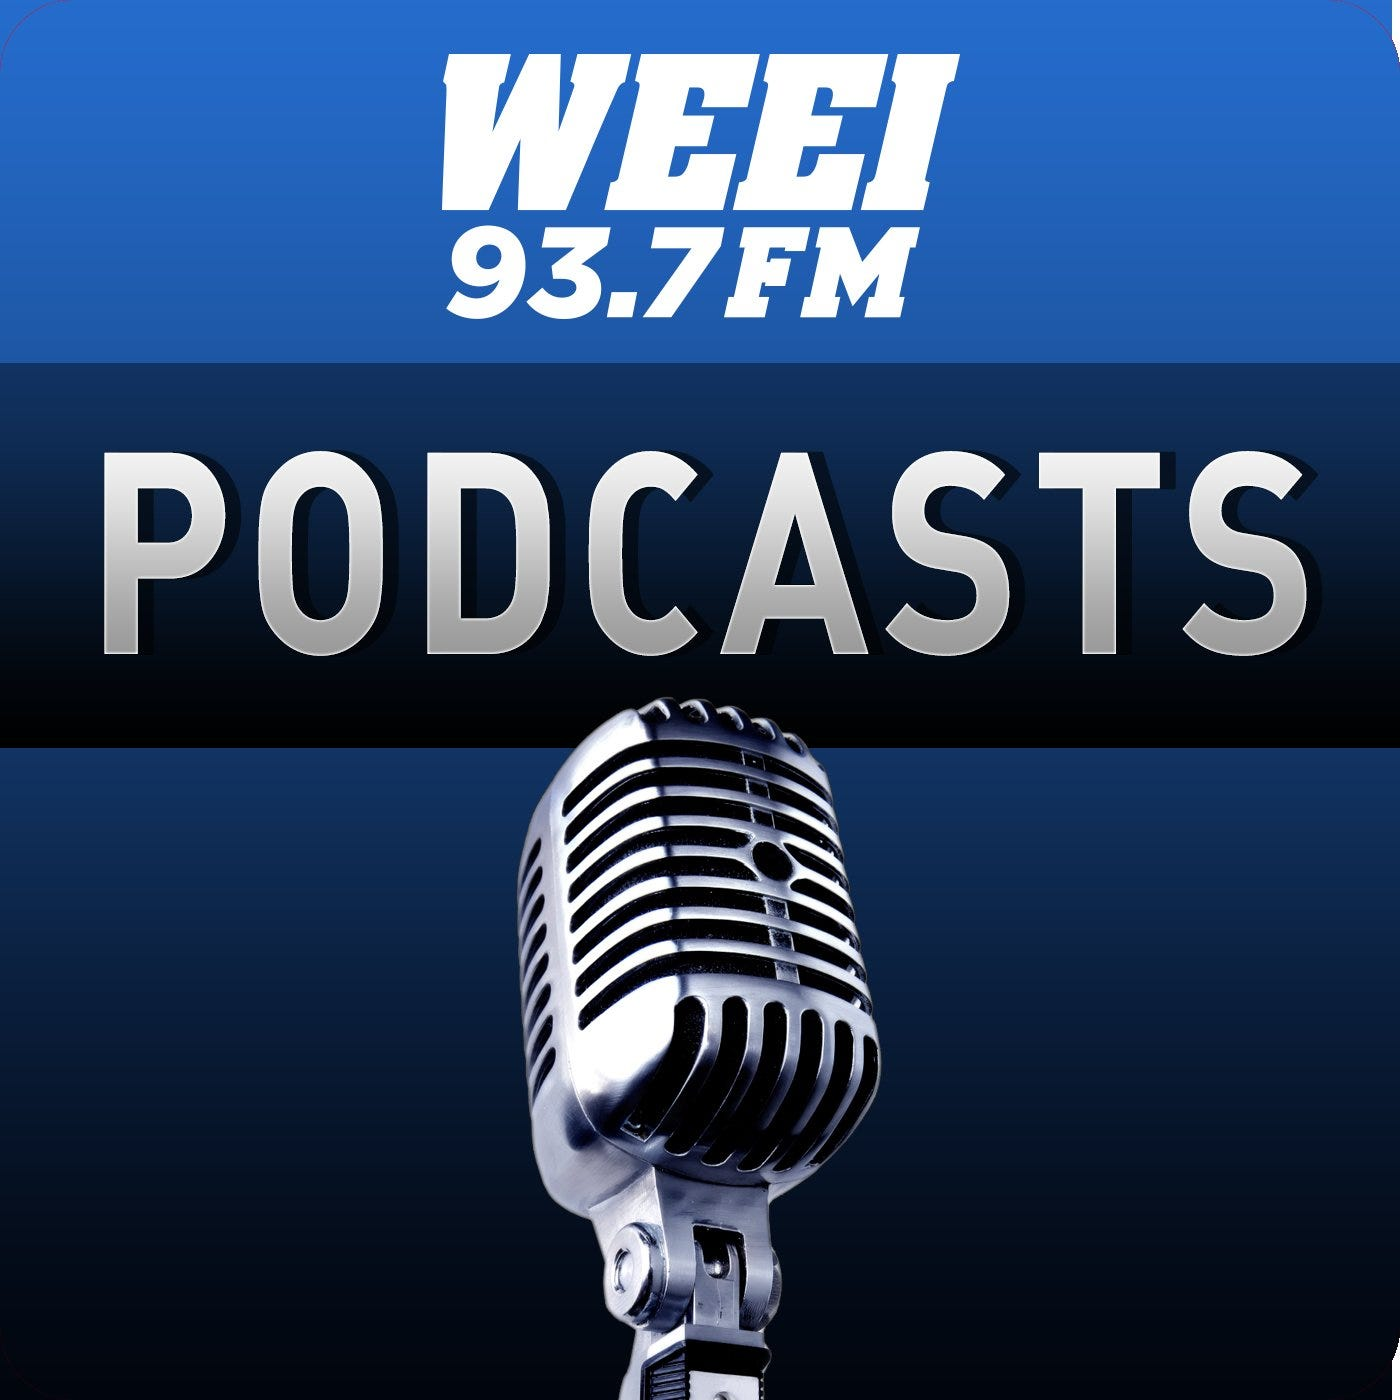 WEEI Podcasts